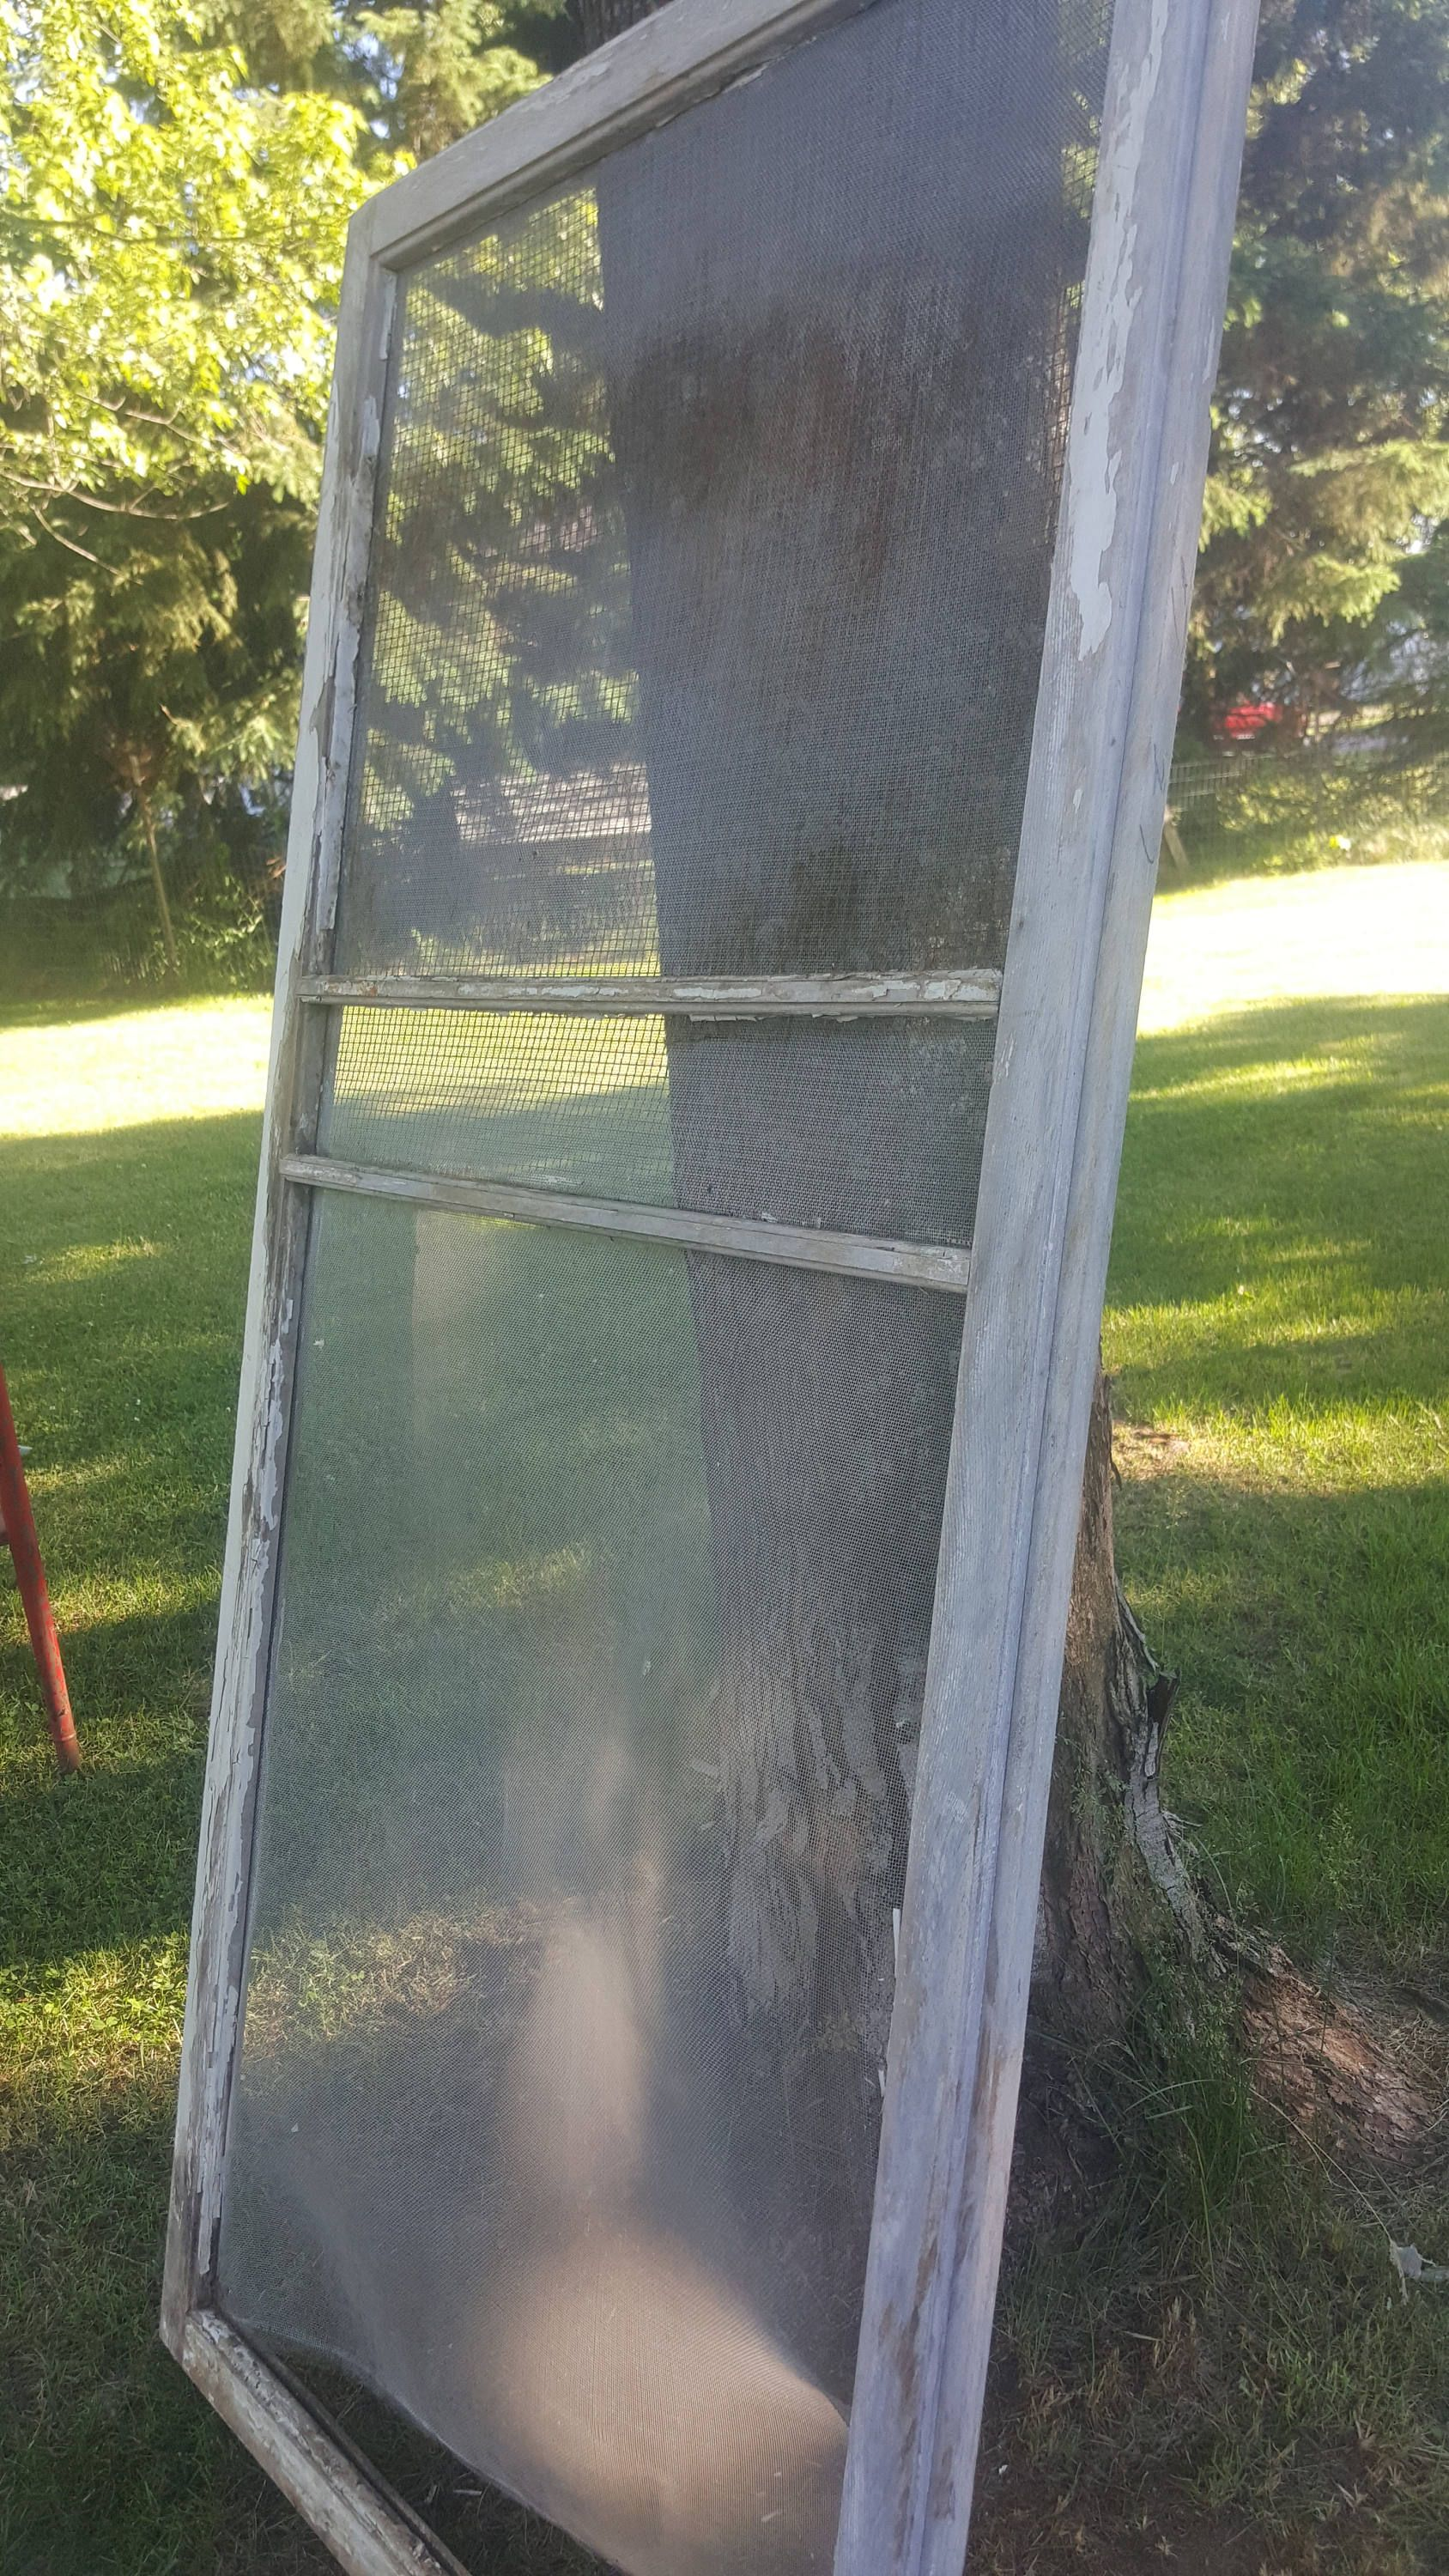 Vintage Wood Screen Window, Three Pane Window, Old Screen Window ...